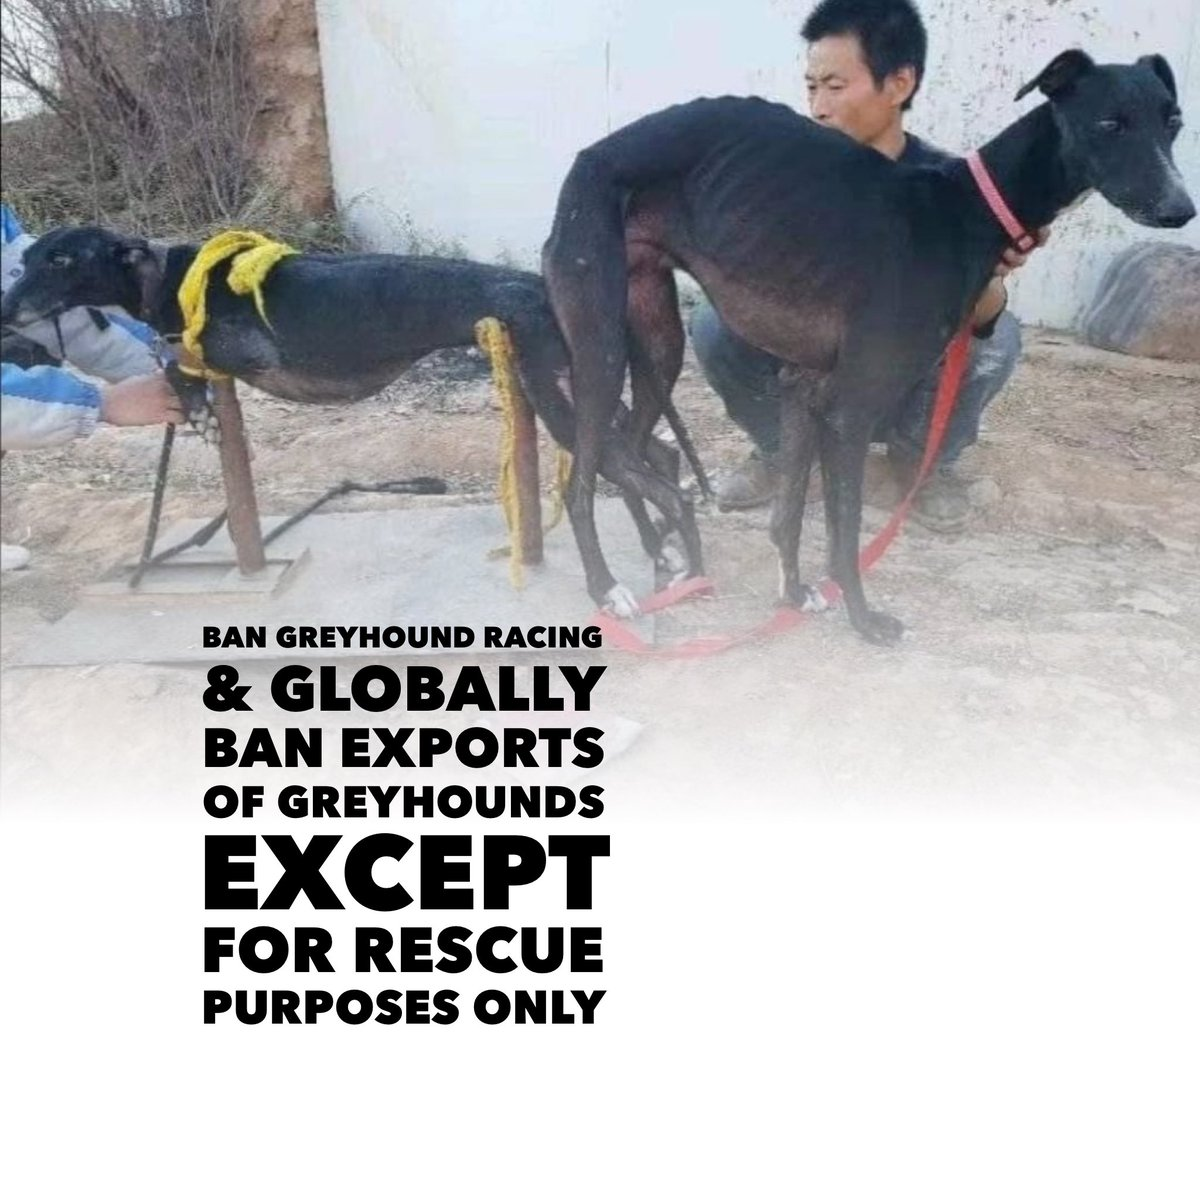 24 Online Protest https://t.co/hdyZRFqLNk  #BanGreyhoundRacing #Ireland #uk  #BAN #GREYHOUNDEXPORTS With the #EXCEPTION of #RESCUE #Purposes Only #StopExportationOfGreyhoundsToAsia  #StopGreyhoundExportsToPakistan @MetroUK @carriesymonds https://t.co/Ysl0A18hCr